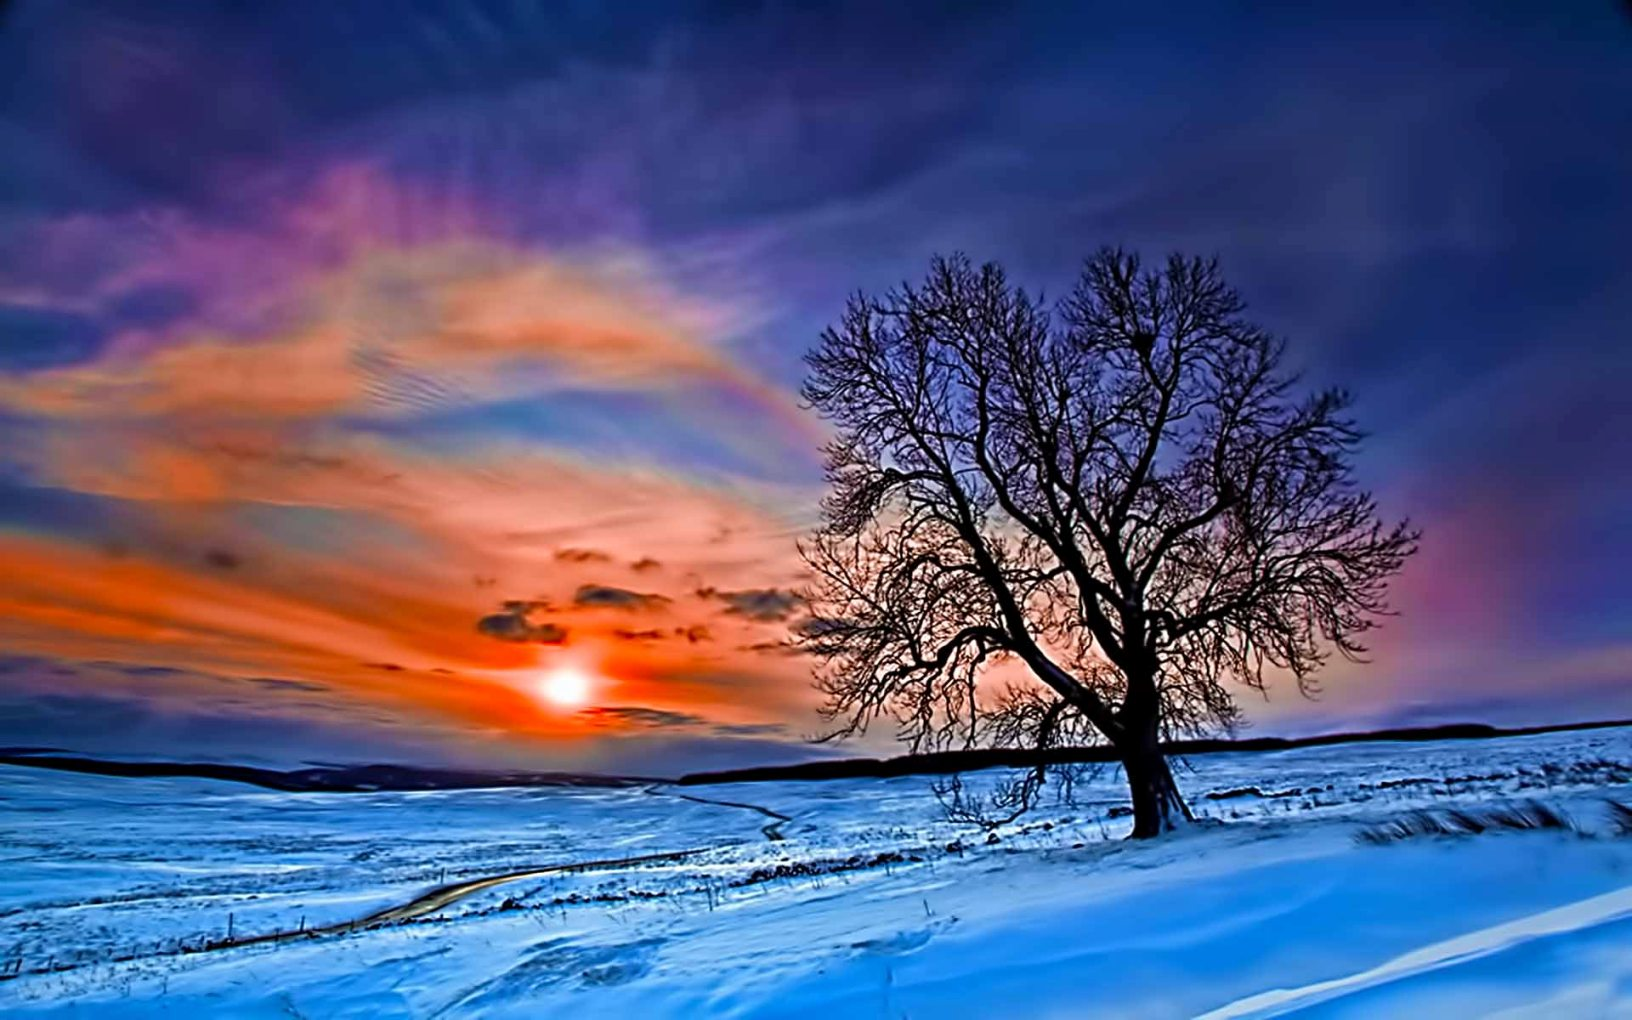 beautiful nature winter wallpaper Ribhu Vashishtha 1632x1020